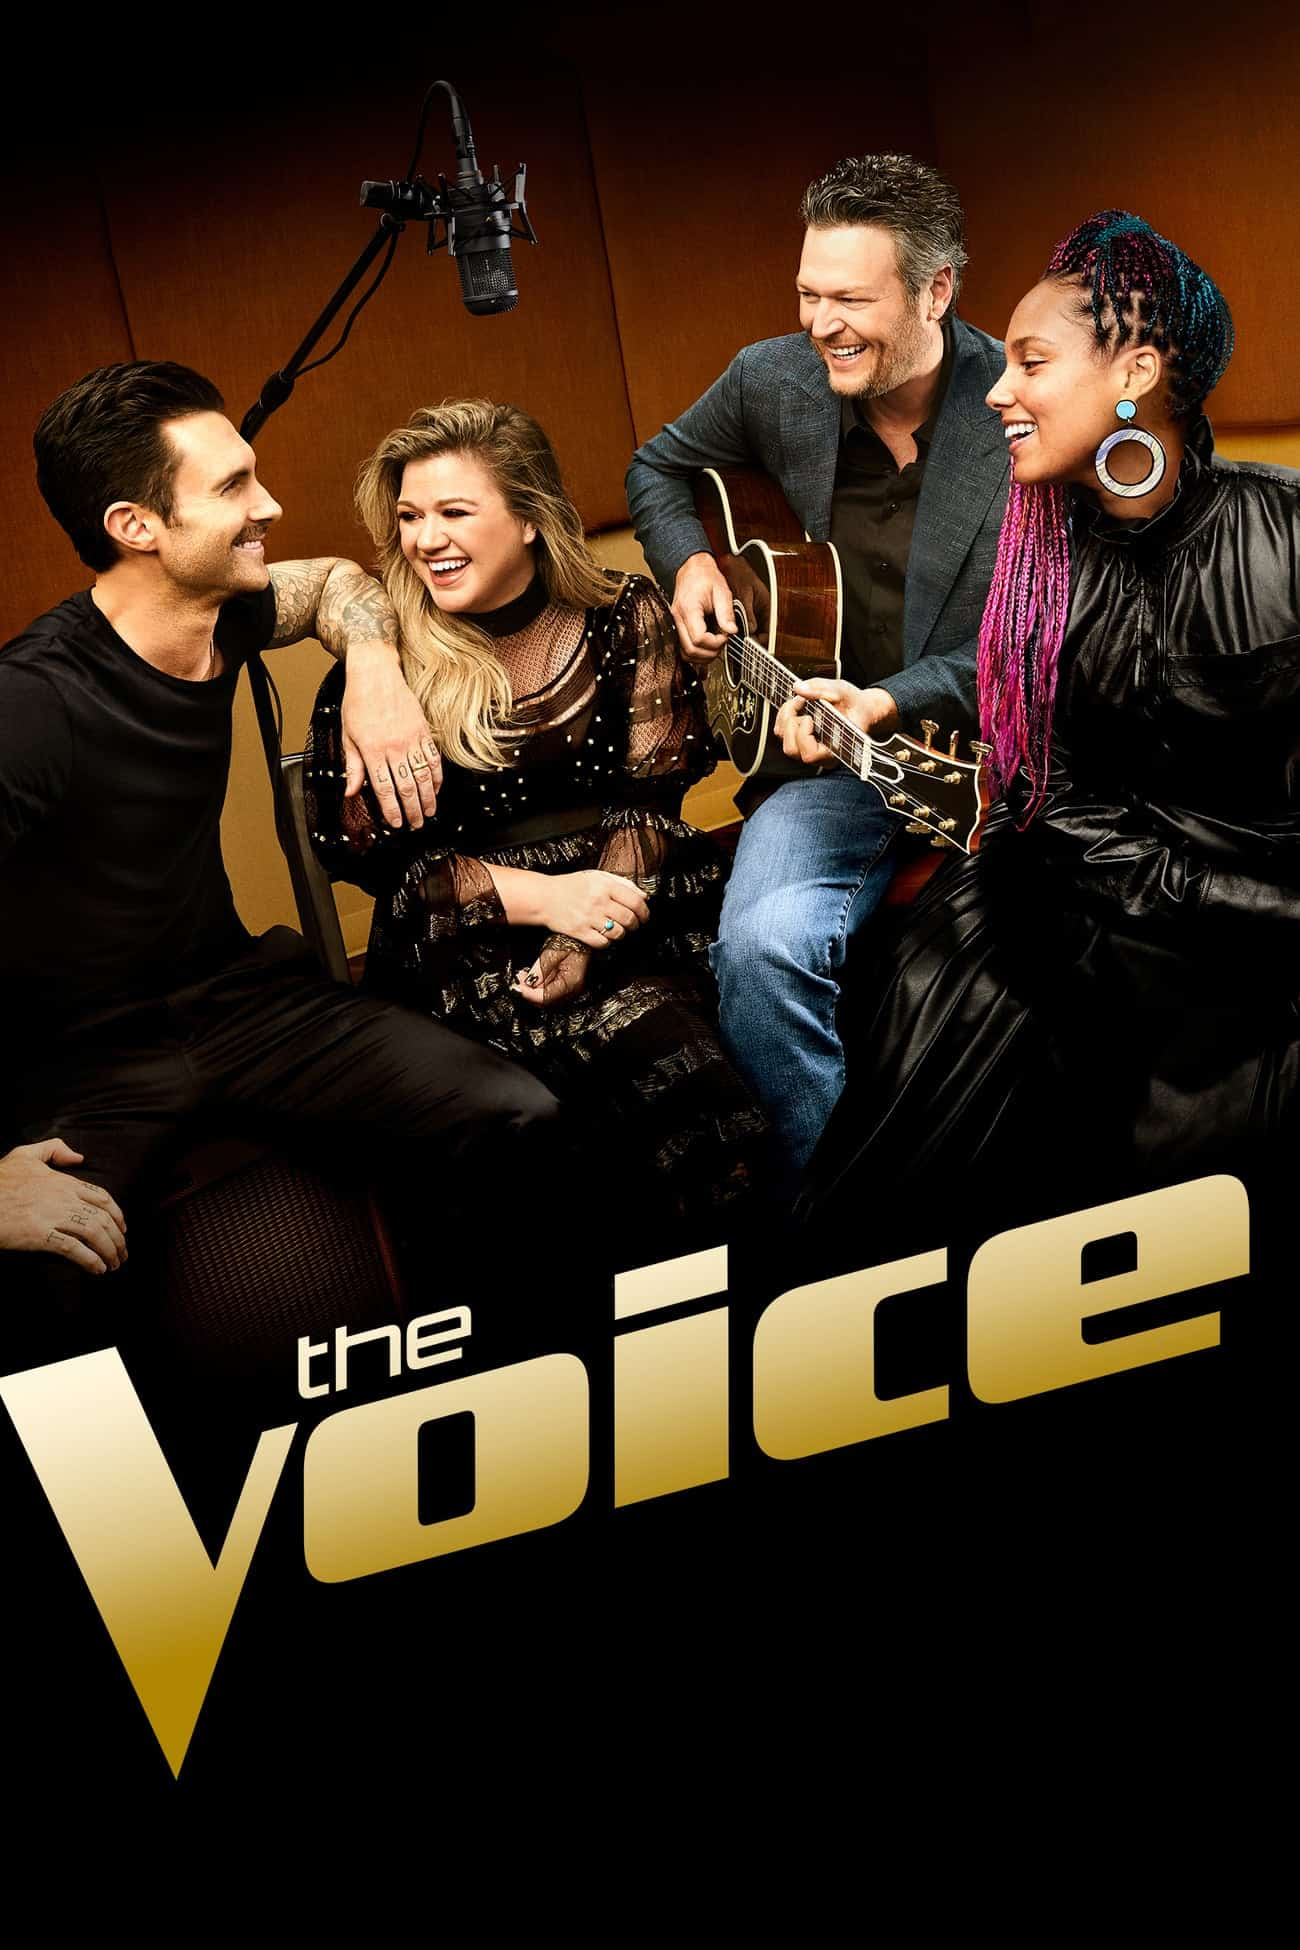 The Voice, 2011